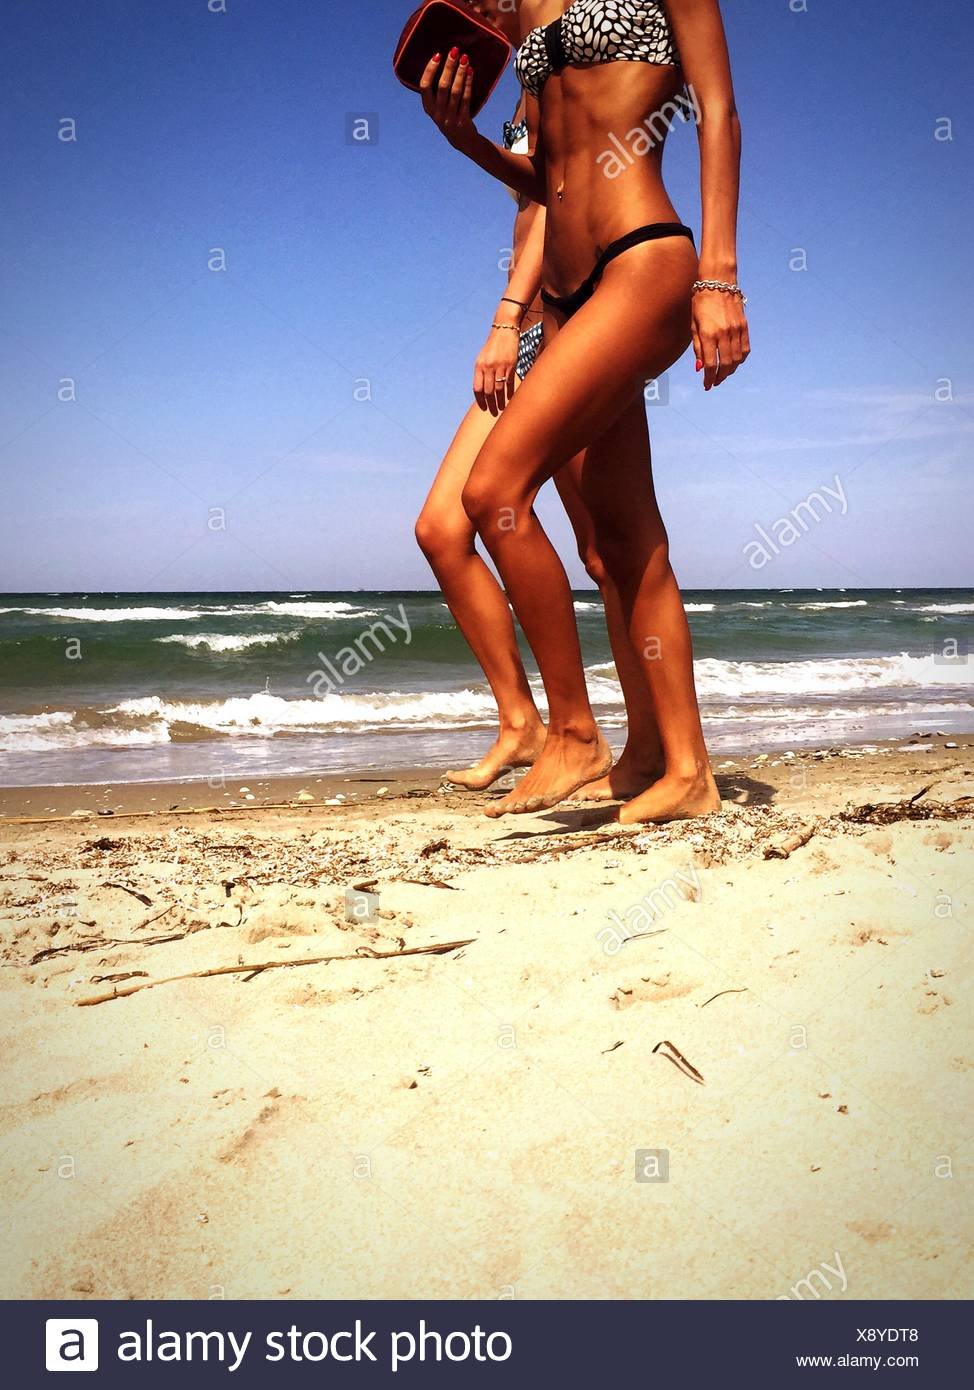 Two Women Walking On Beach - Stock Image